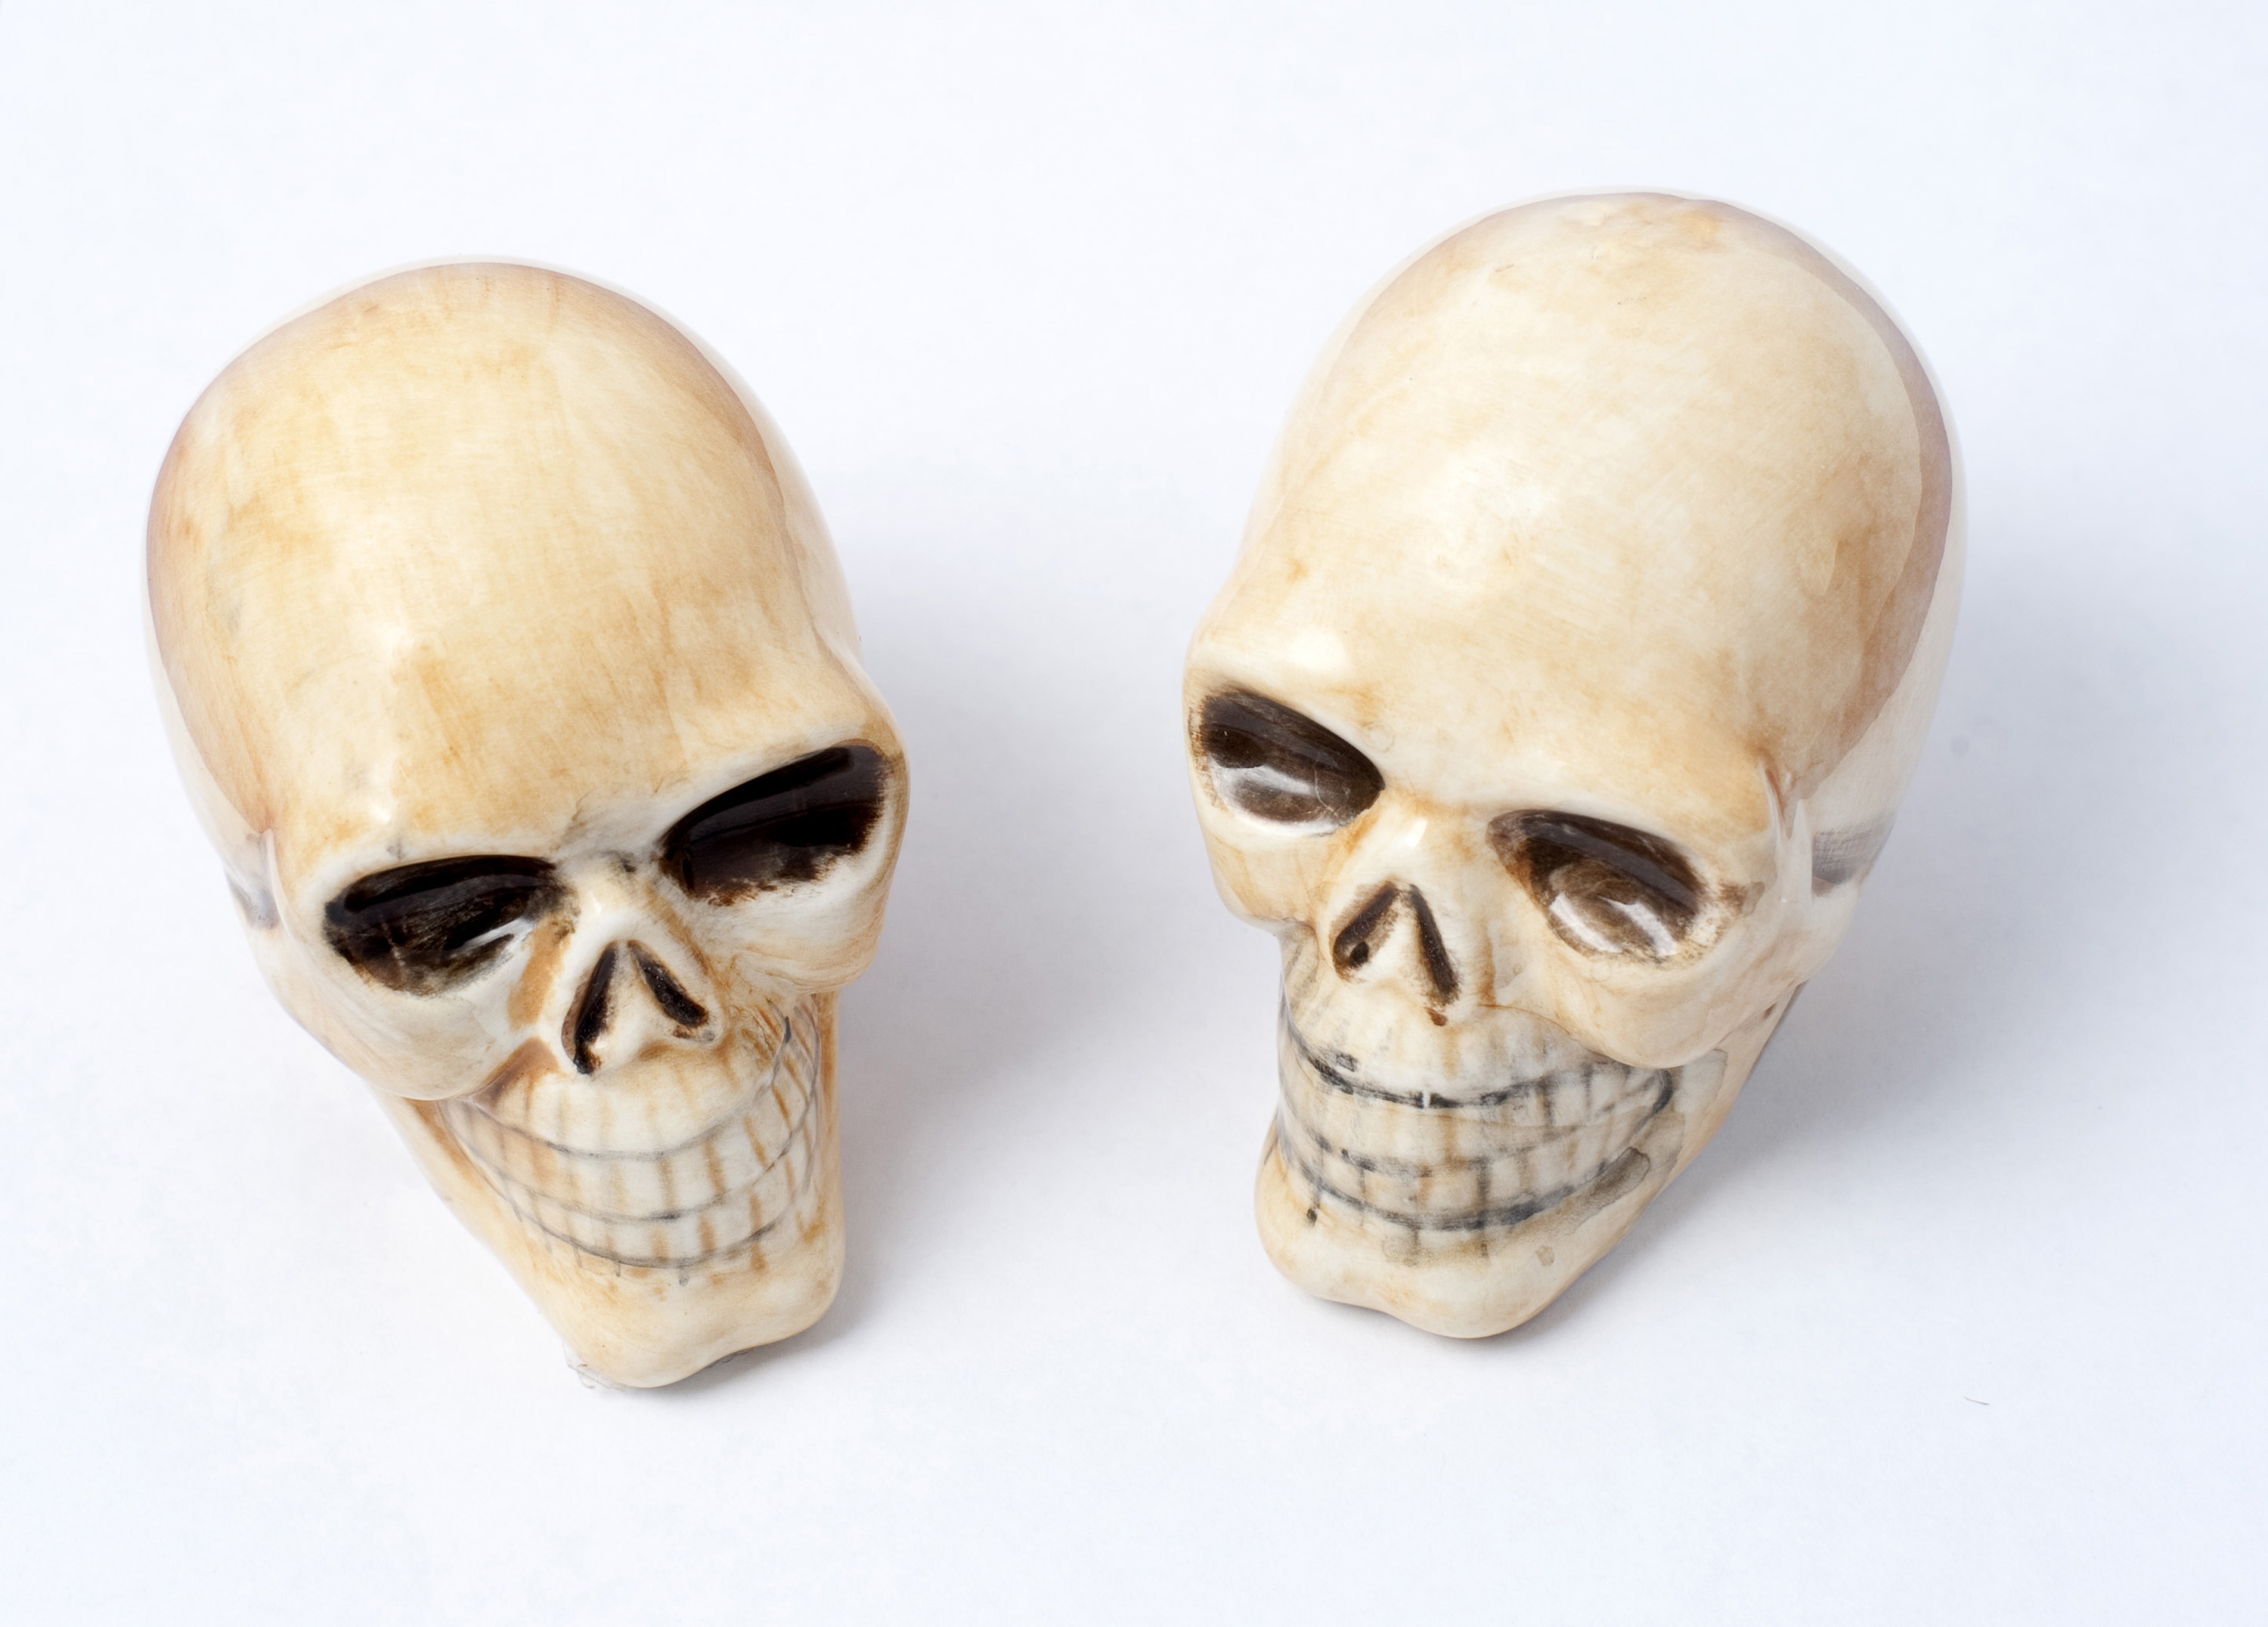 a pair of matching ceramic skull halloween ornaments